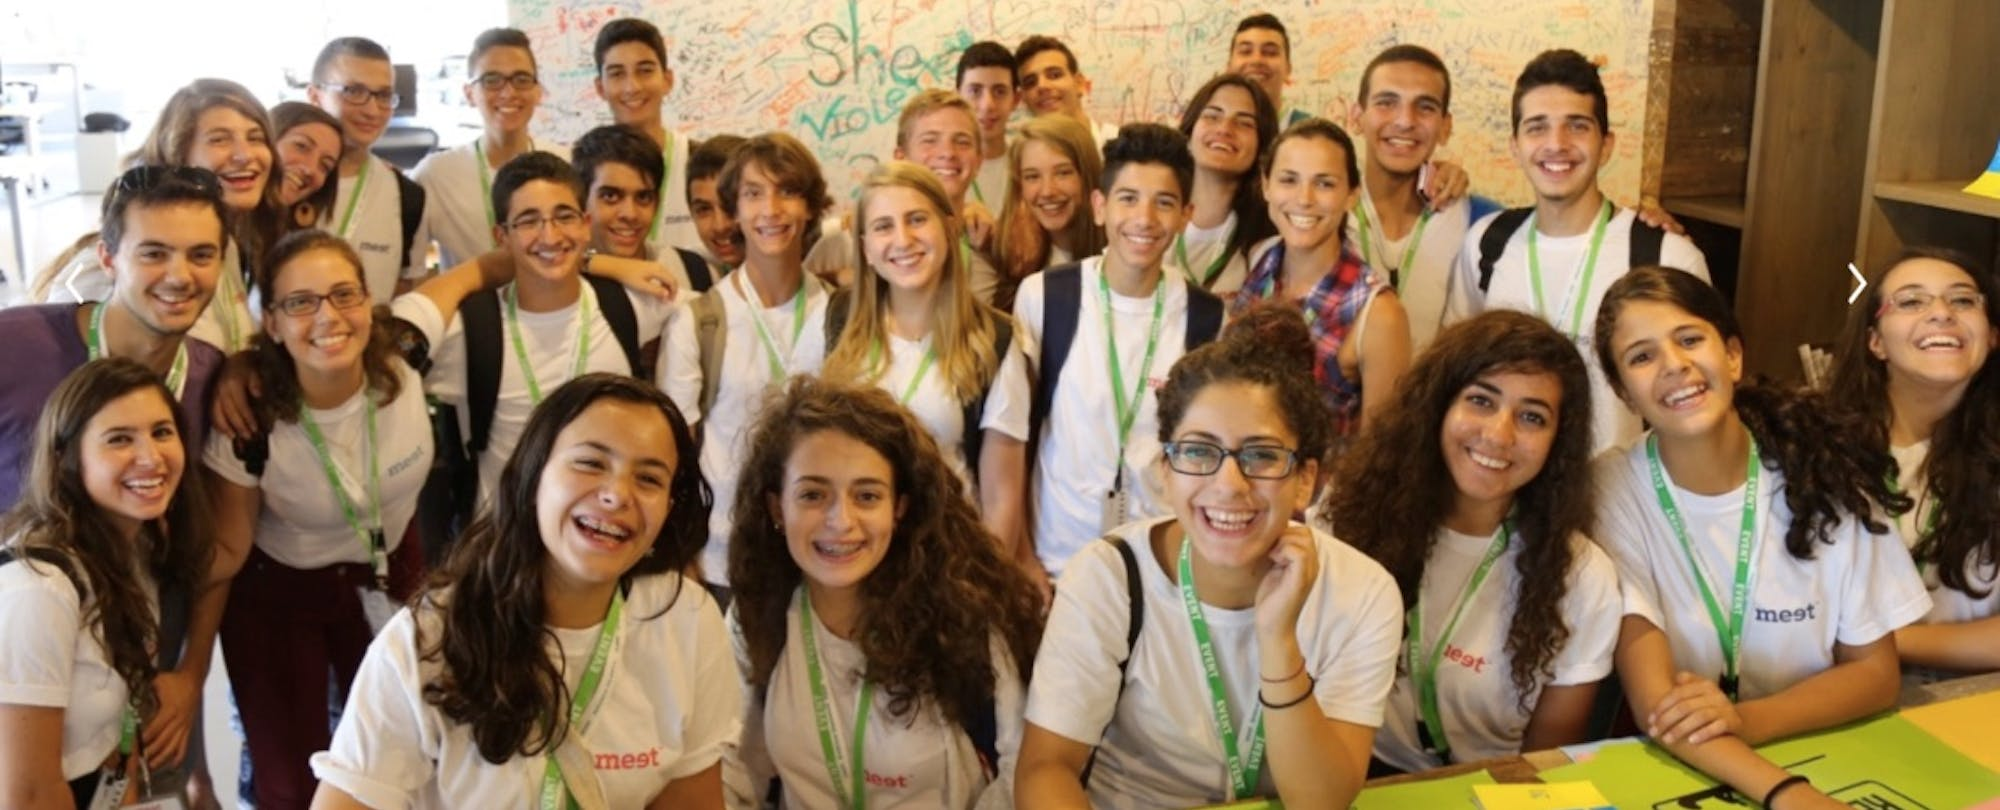 Can This MIT Student Entrepreneurship Program Bridge the Israeli-Palestinian Divide?